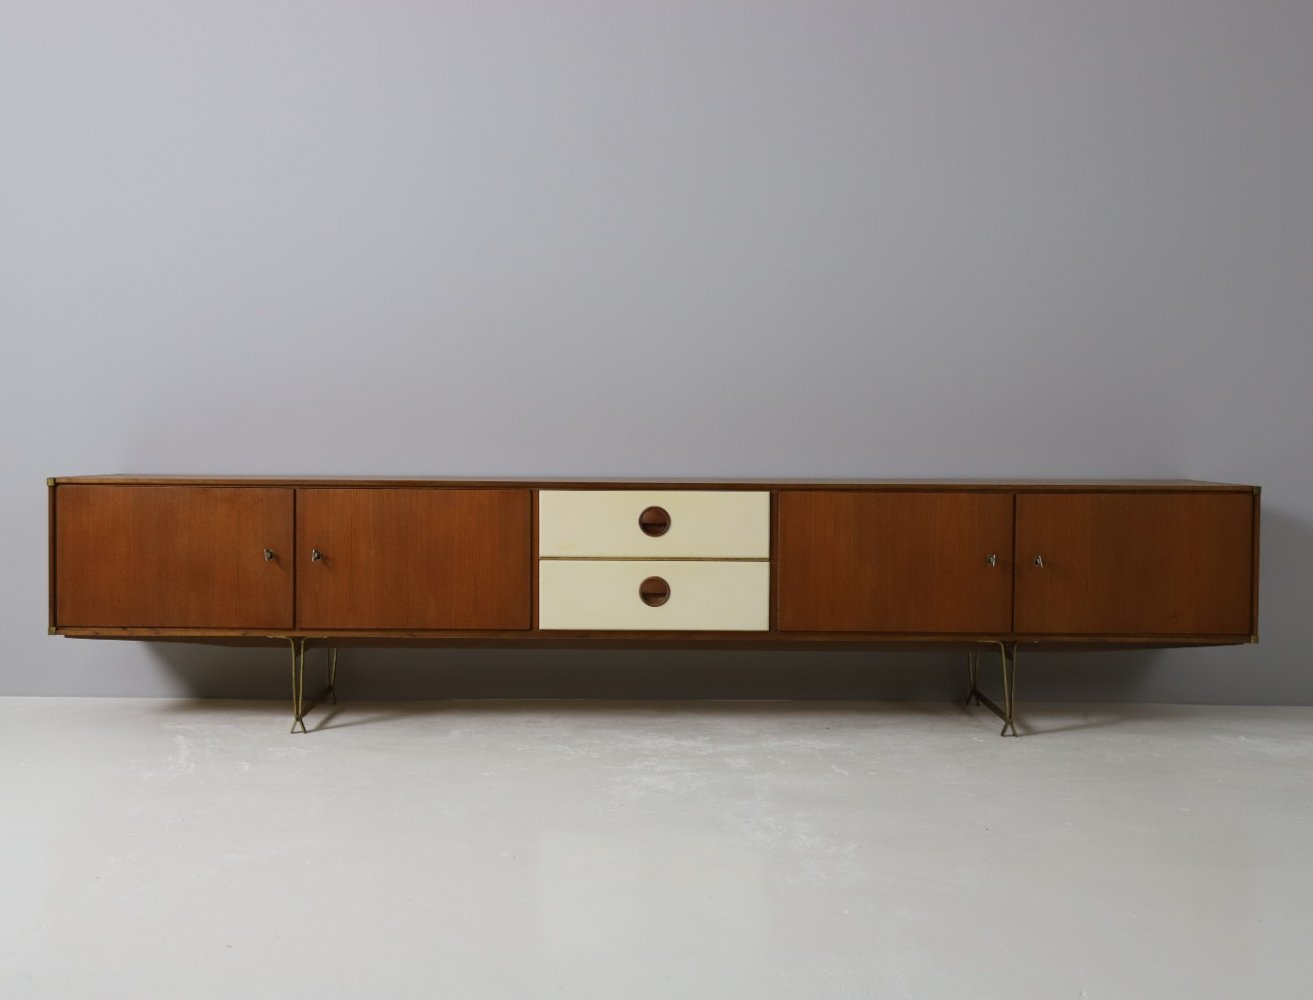 Rare low sideboard by William Watting for Fristho, 1954